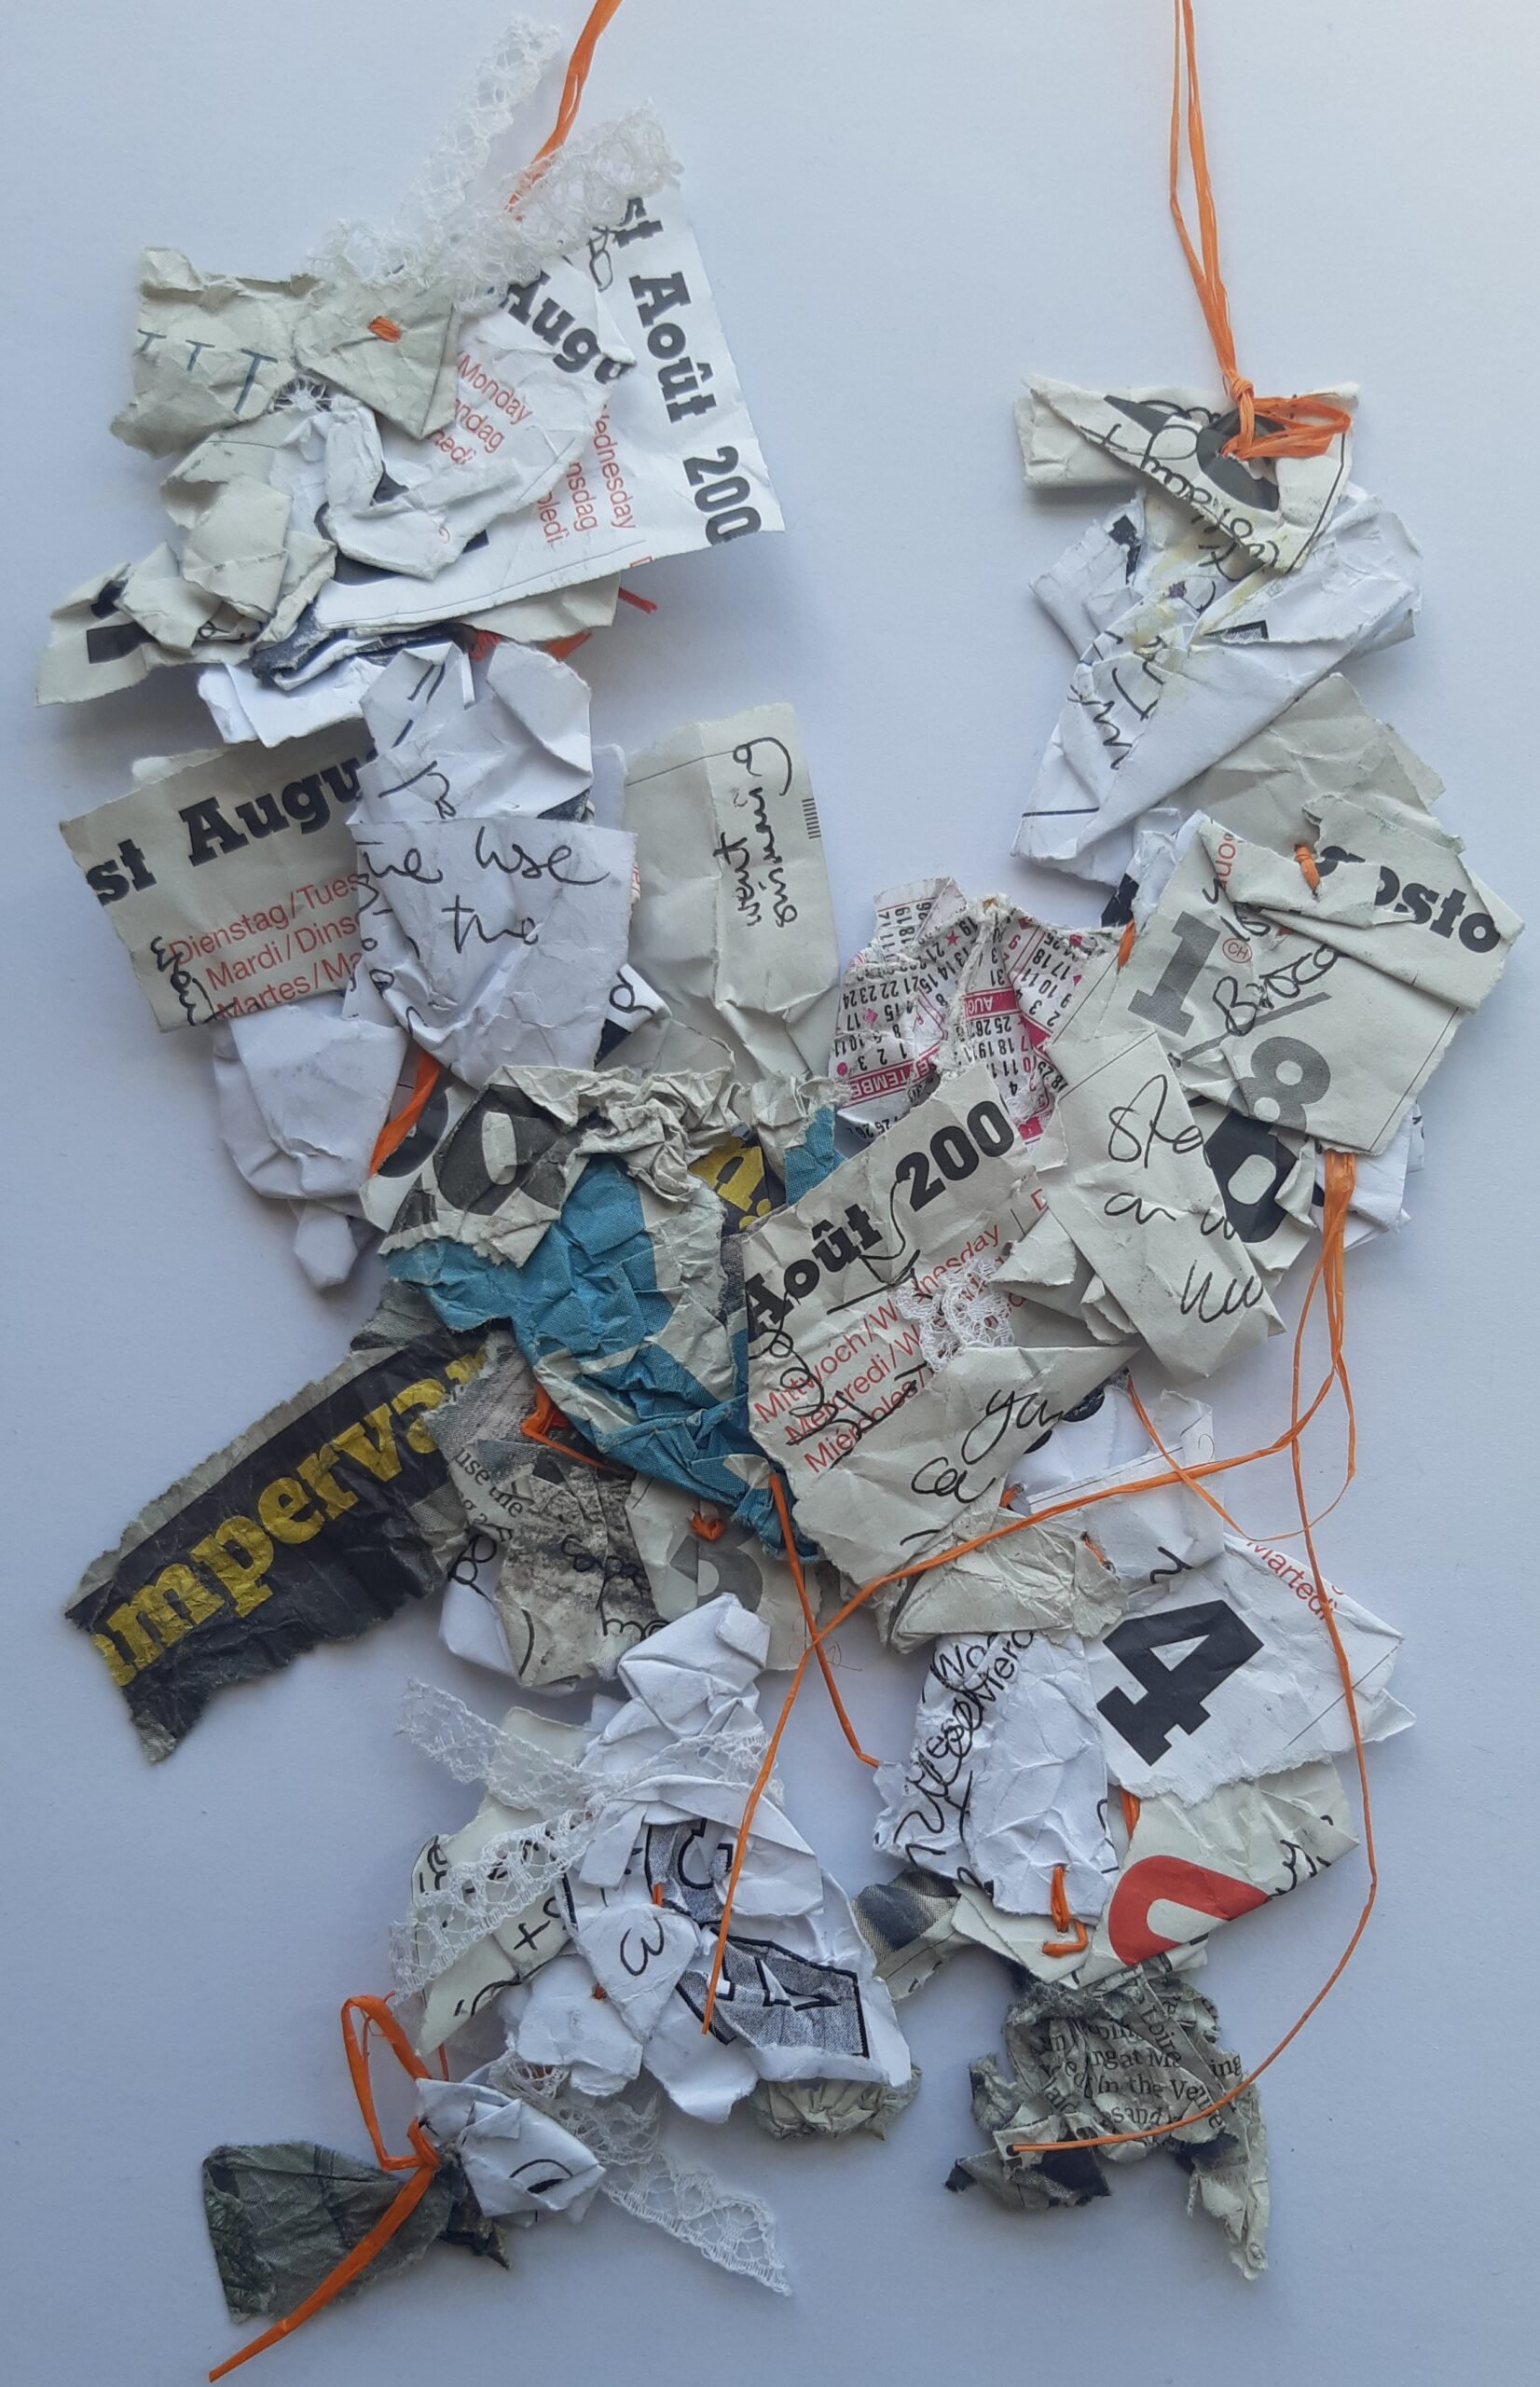 paper and thread work made from found papers.